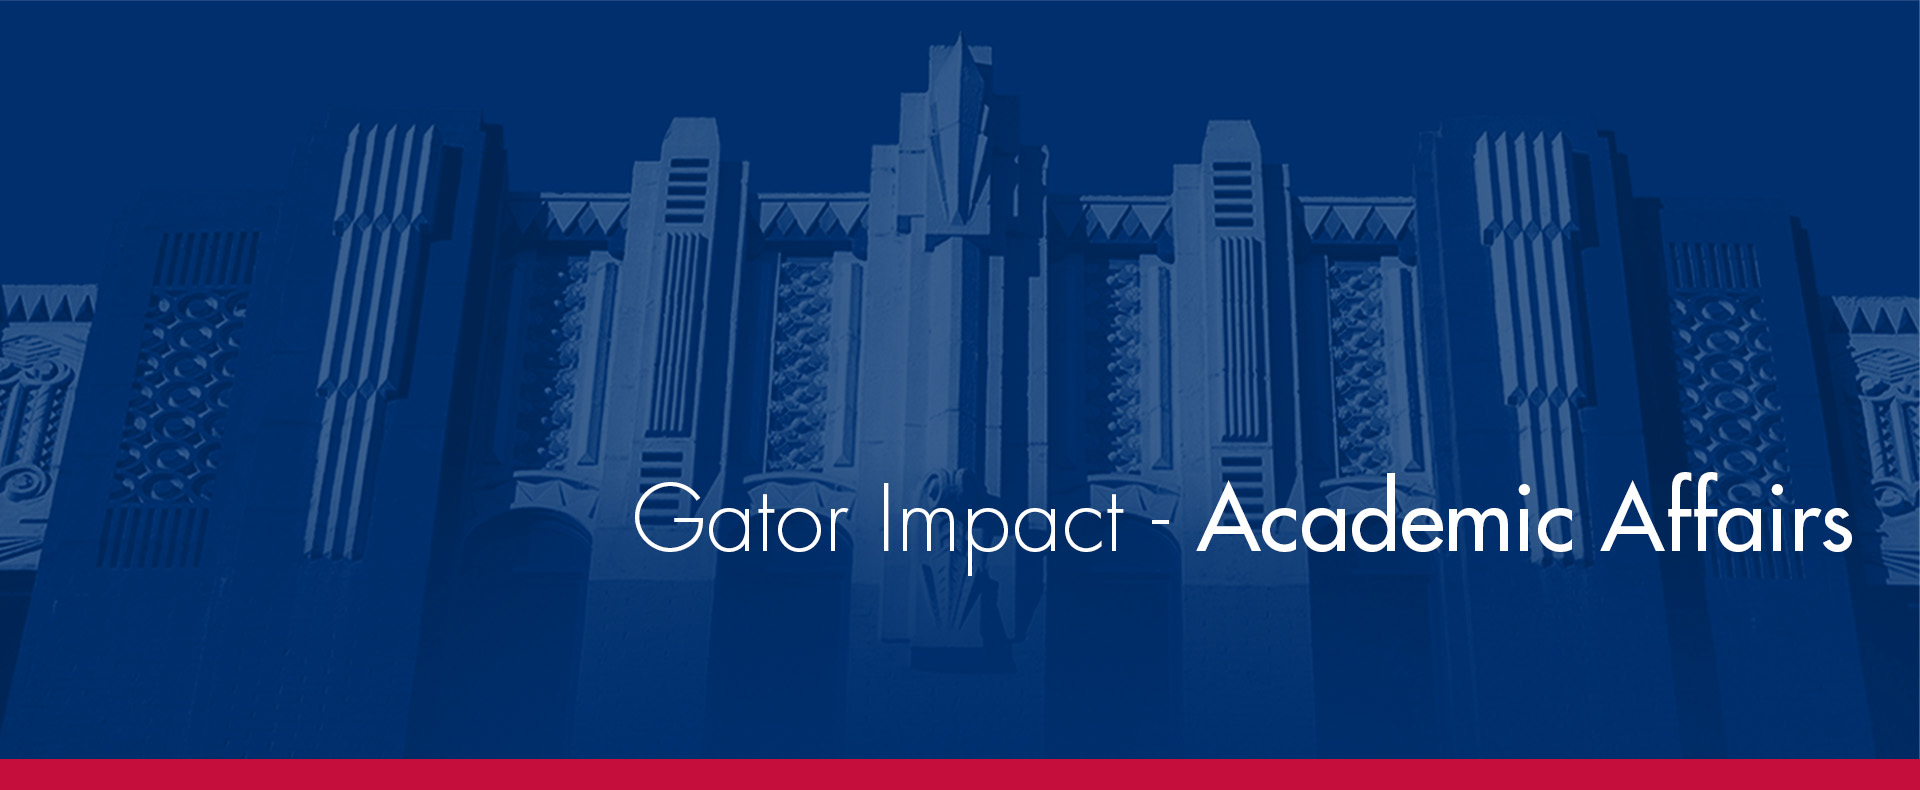 One main building in blue with the words Gator Impact - Academic Affairs